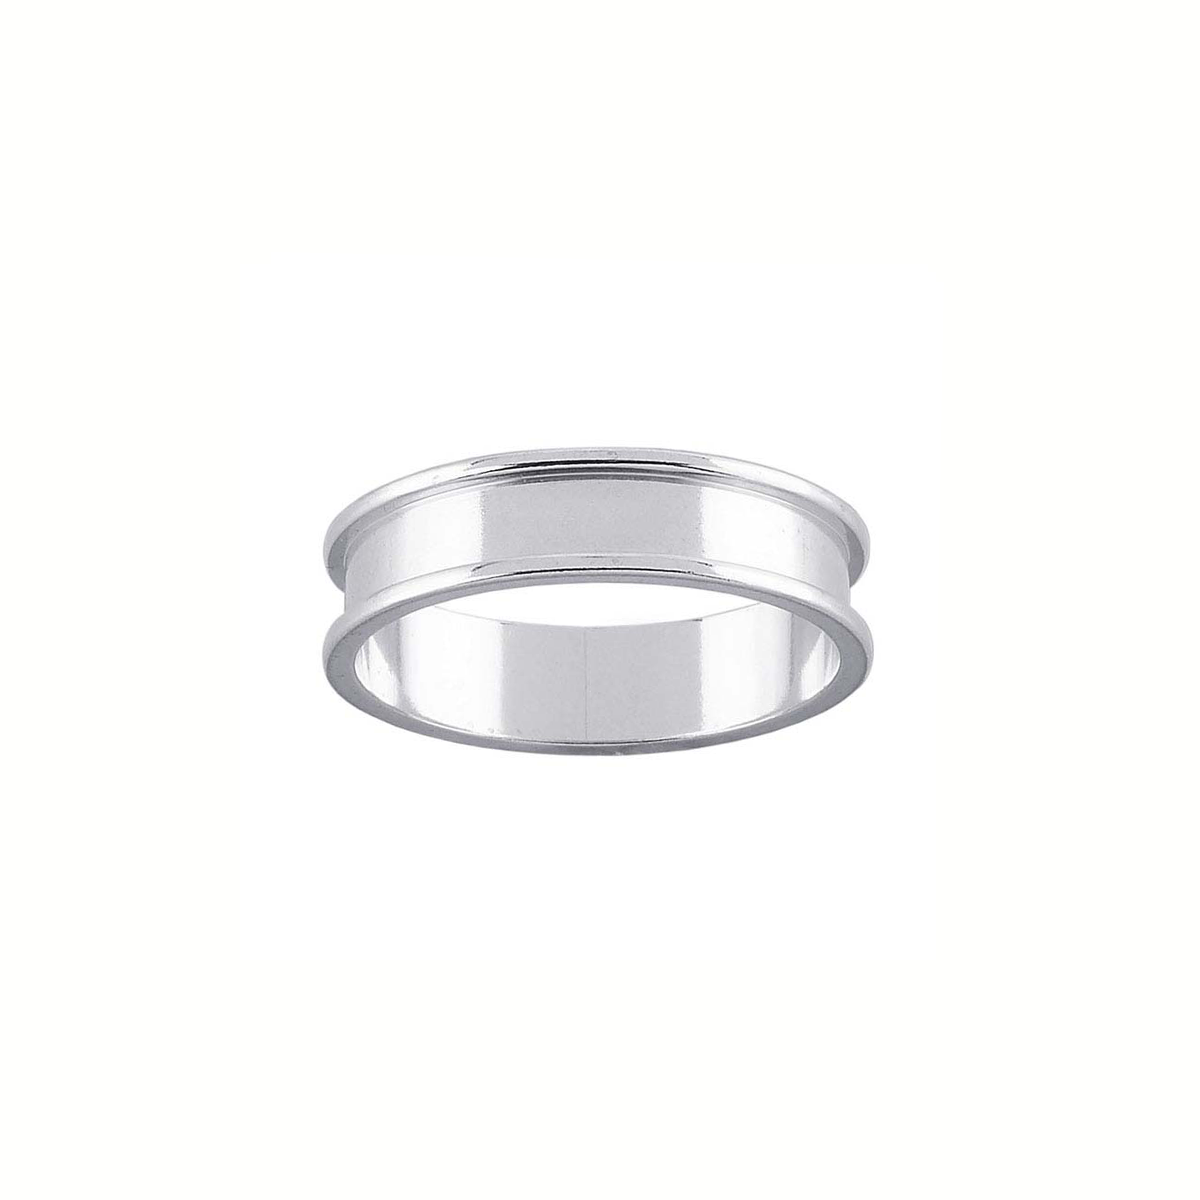 Ring Core 5mm Wide Silver Uk Sizes Ring Making Metal Clay Ltd